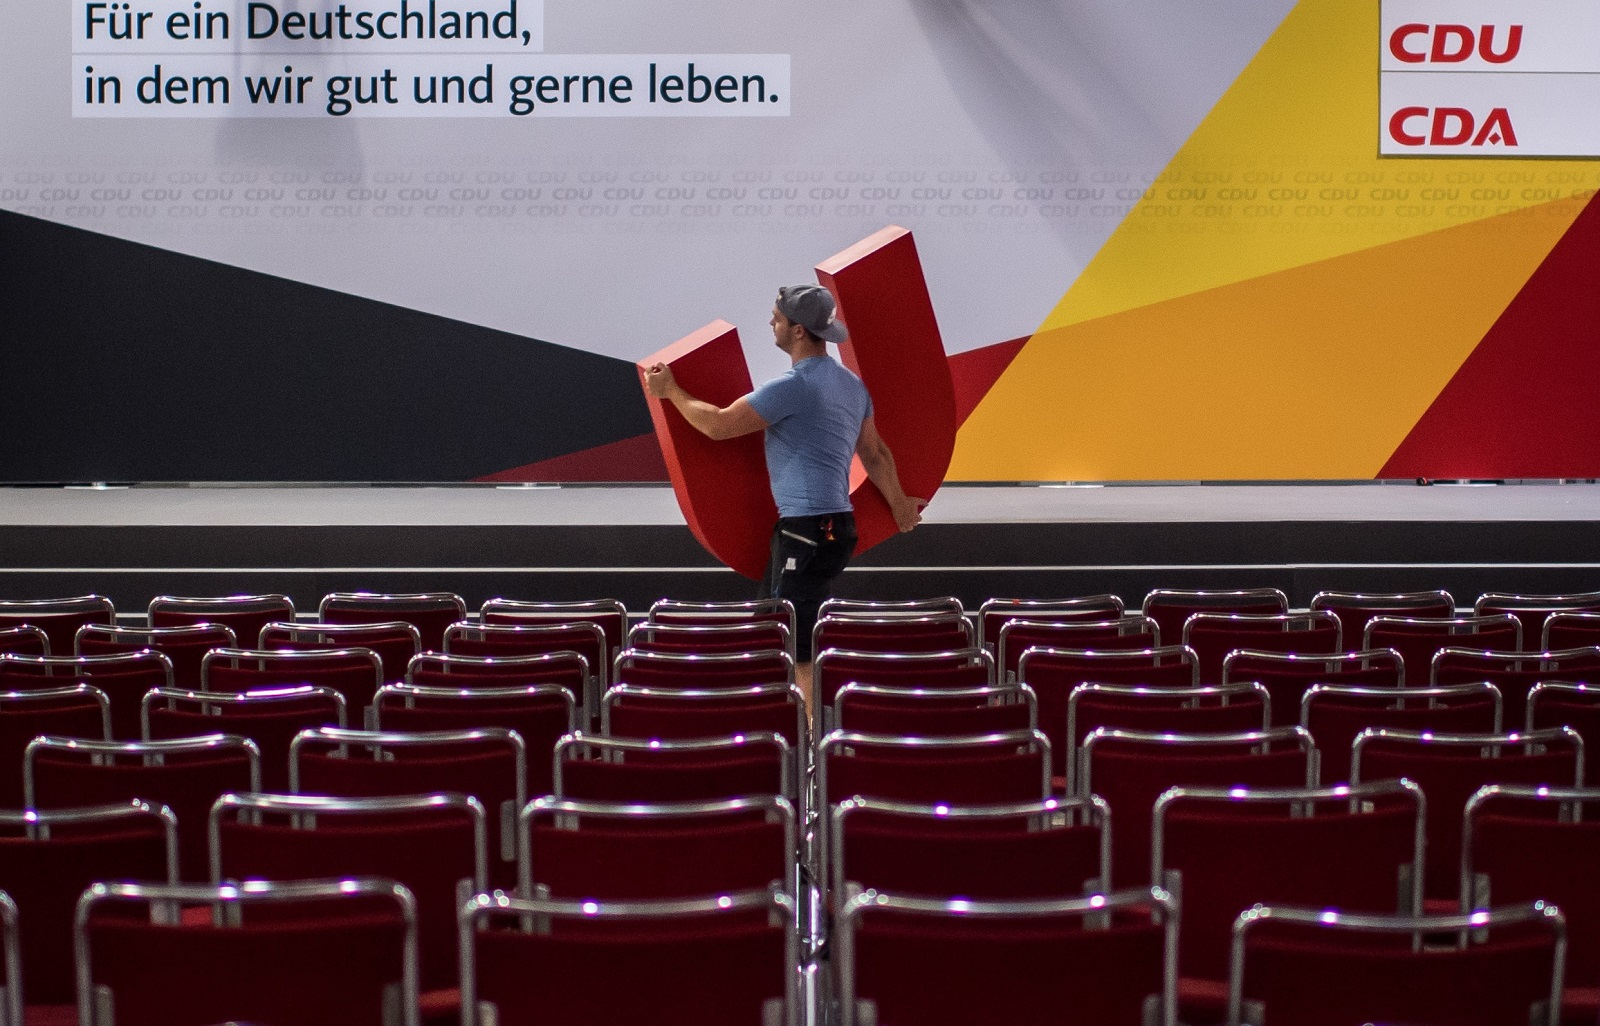 The German Christian Democrats Union (CDU) federal election campaign opening rally in Dortmund, Germany.